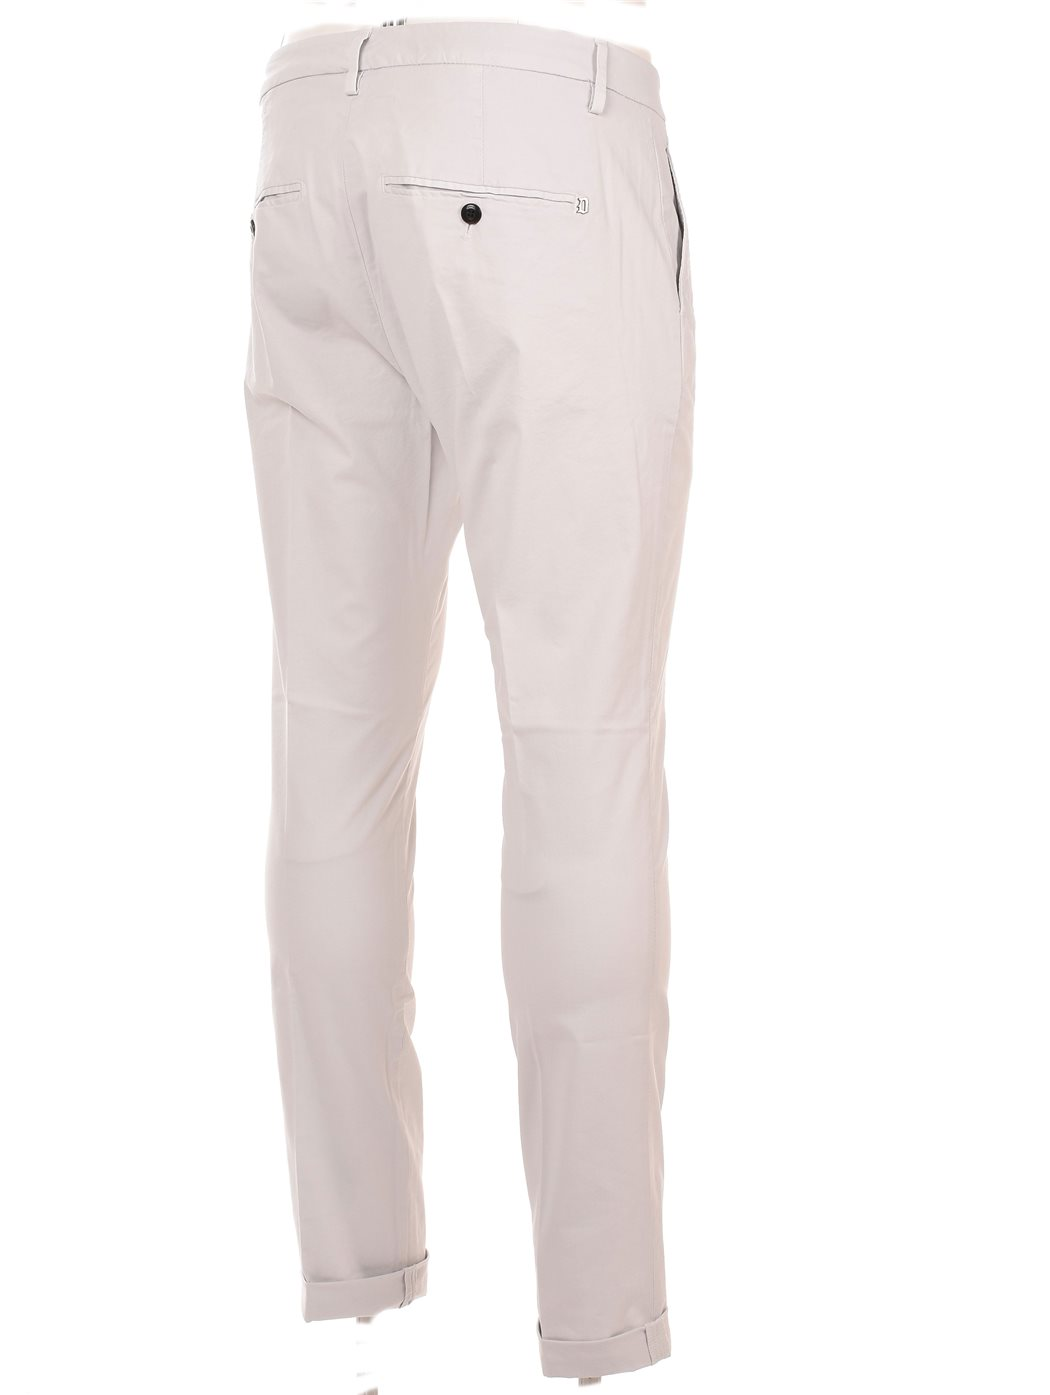 DONDUP UP235 DU006 PANTALONI